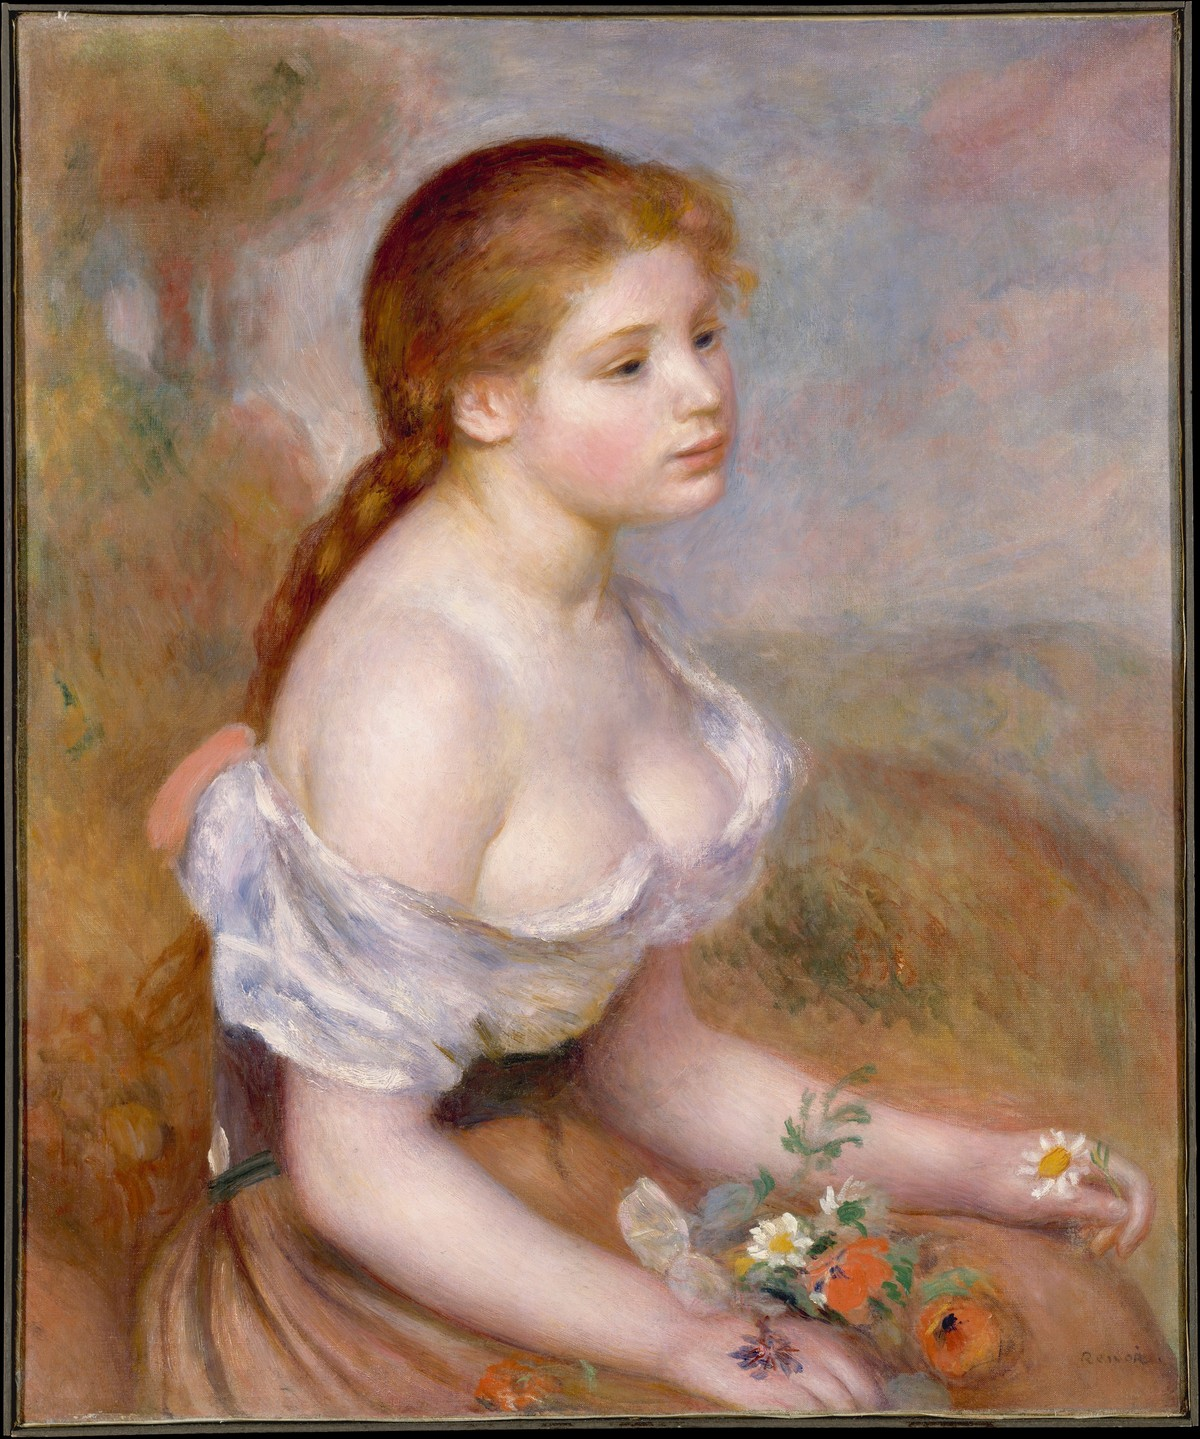 A Young Girl with Daisies / Auguste Renoir / 1889